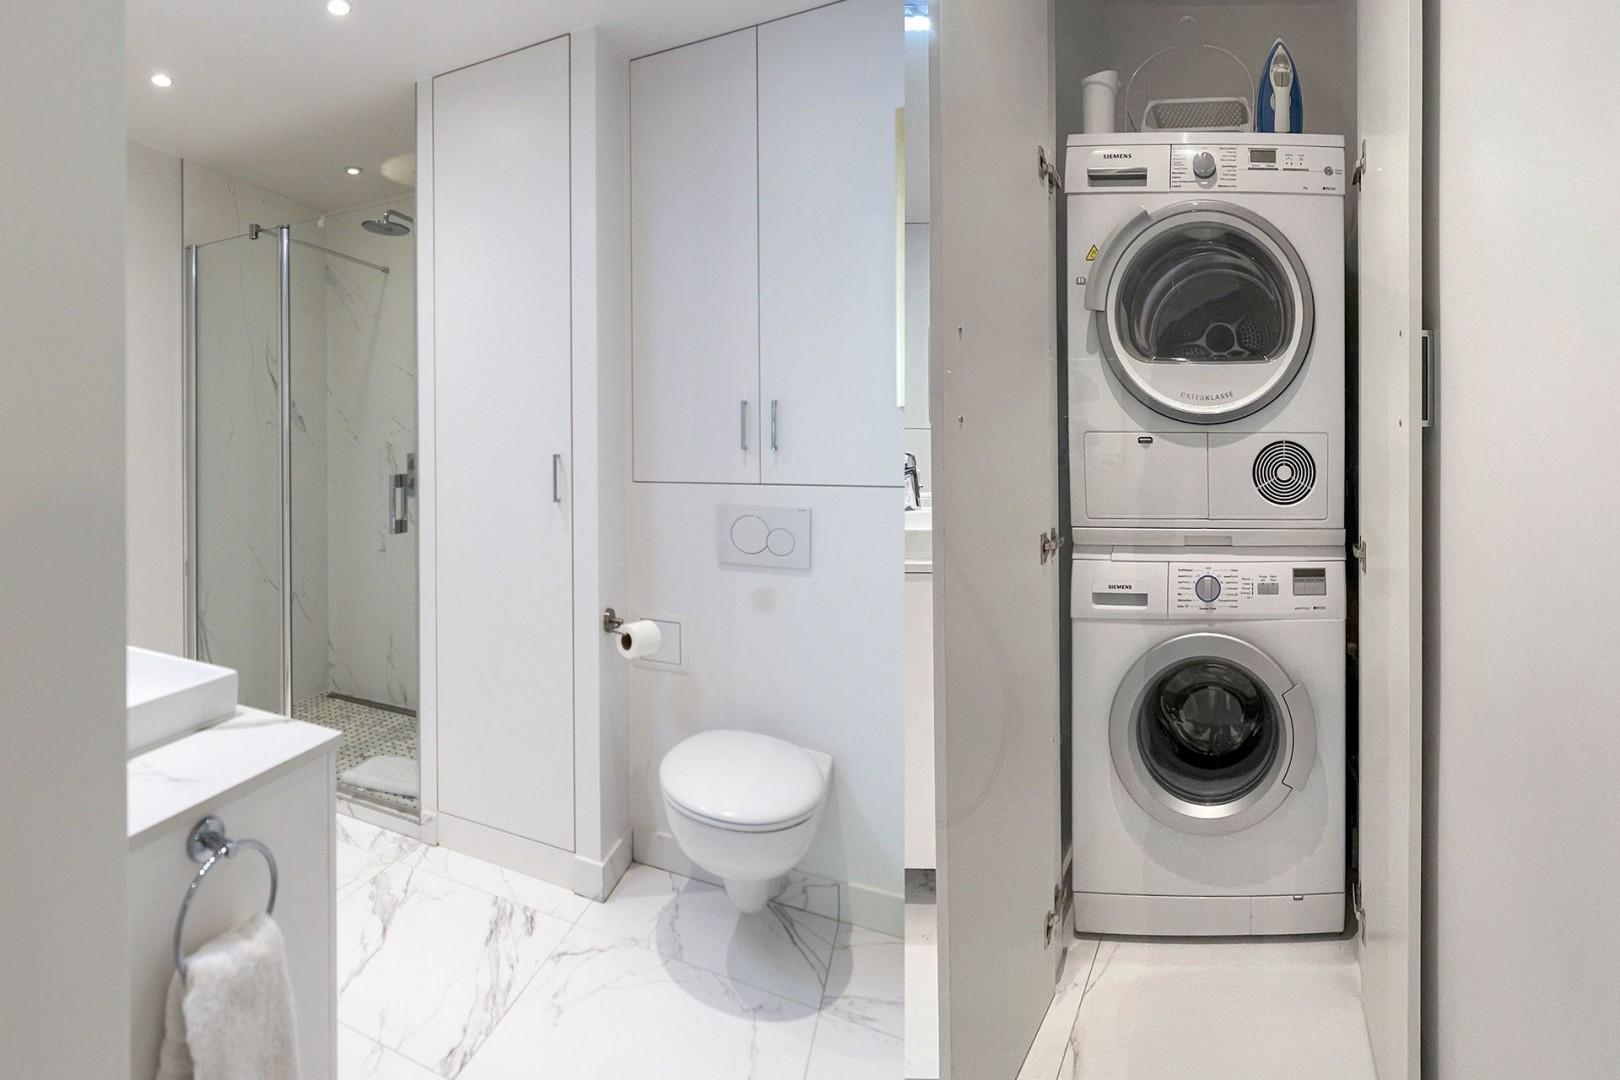 The washer and dryer are conveniently located in bathroom 1